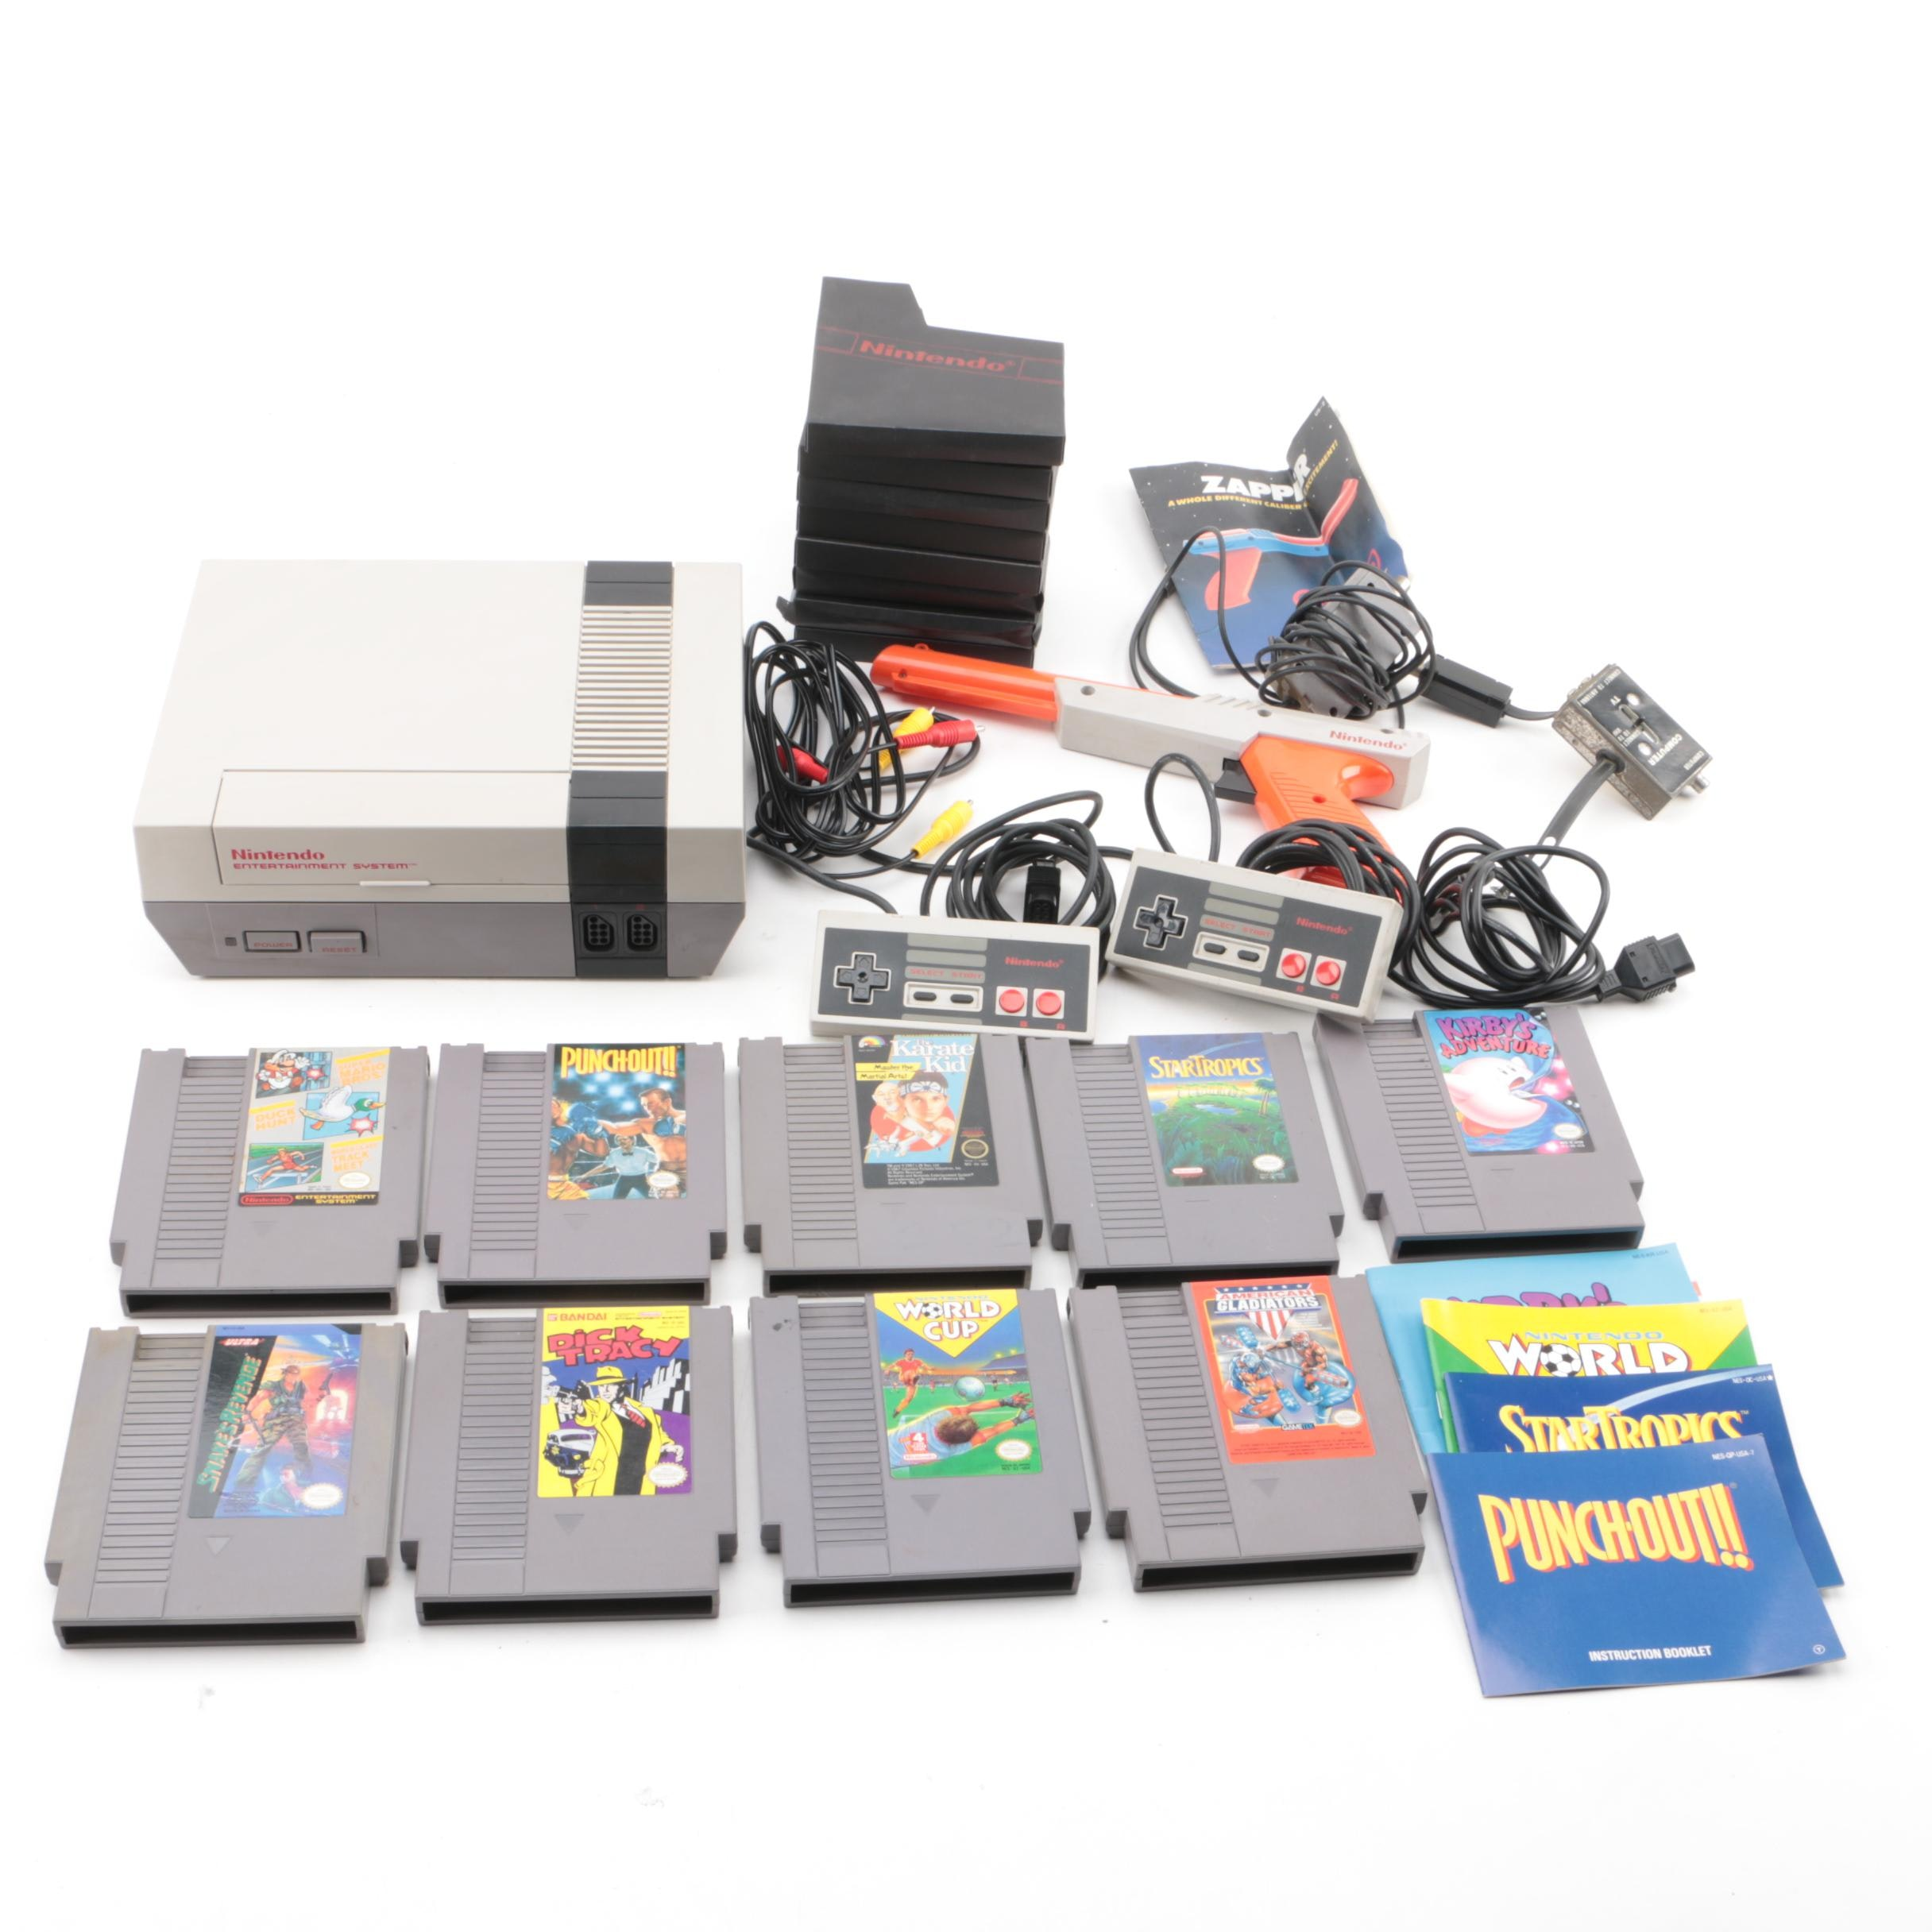 Vintage Nintendo Entertainment System with Games and Accessories